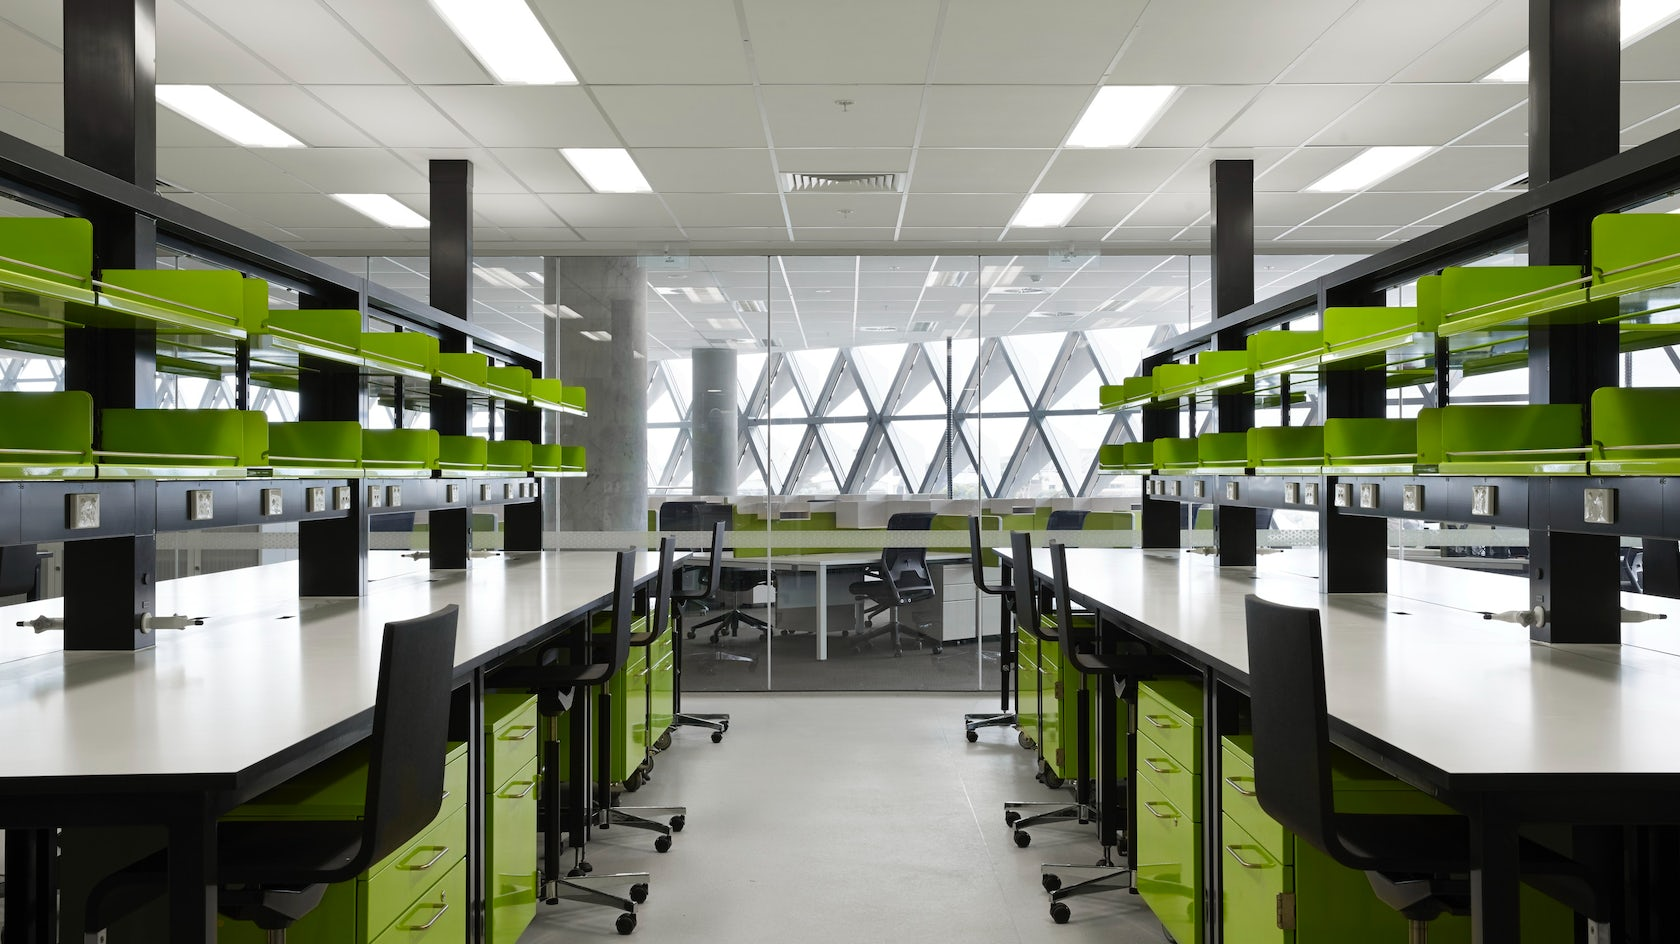 Research On Classroom Design ~ South australian health and medical research institute